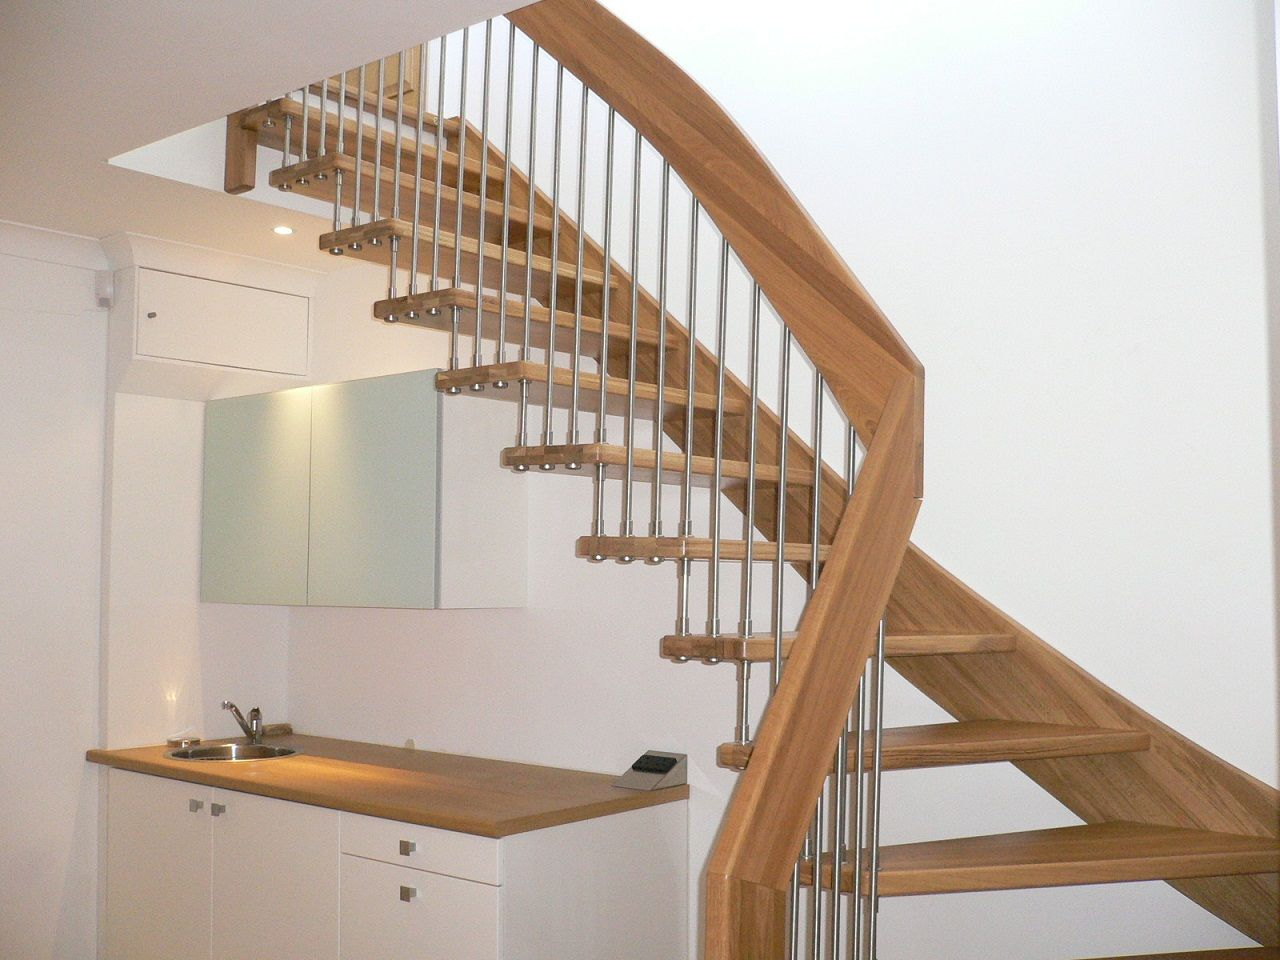 A Collection Of Amazing Staircase Design Ideas : Unique Modern Timber Wooden  Staircase Design Inspiration For Awesome Interior Design